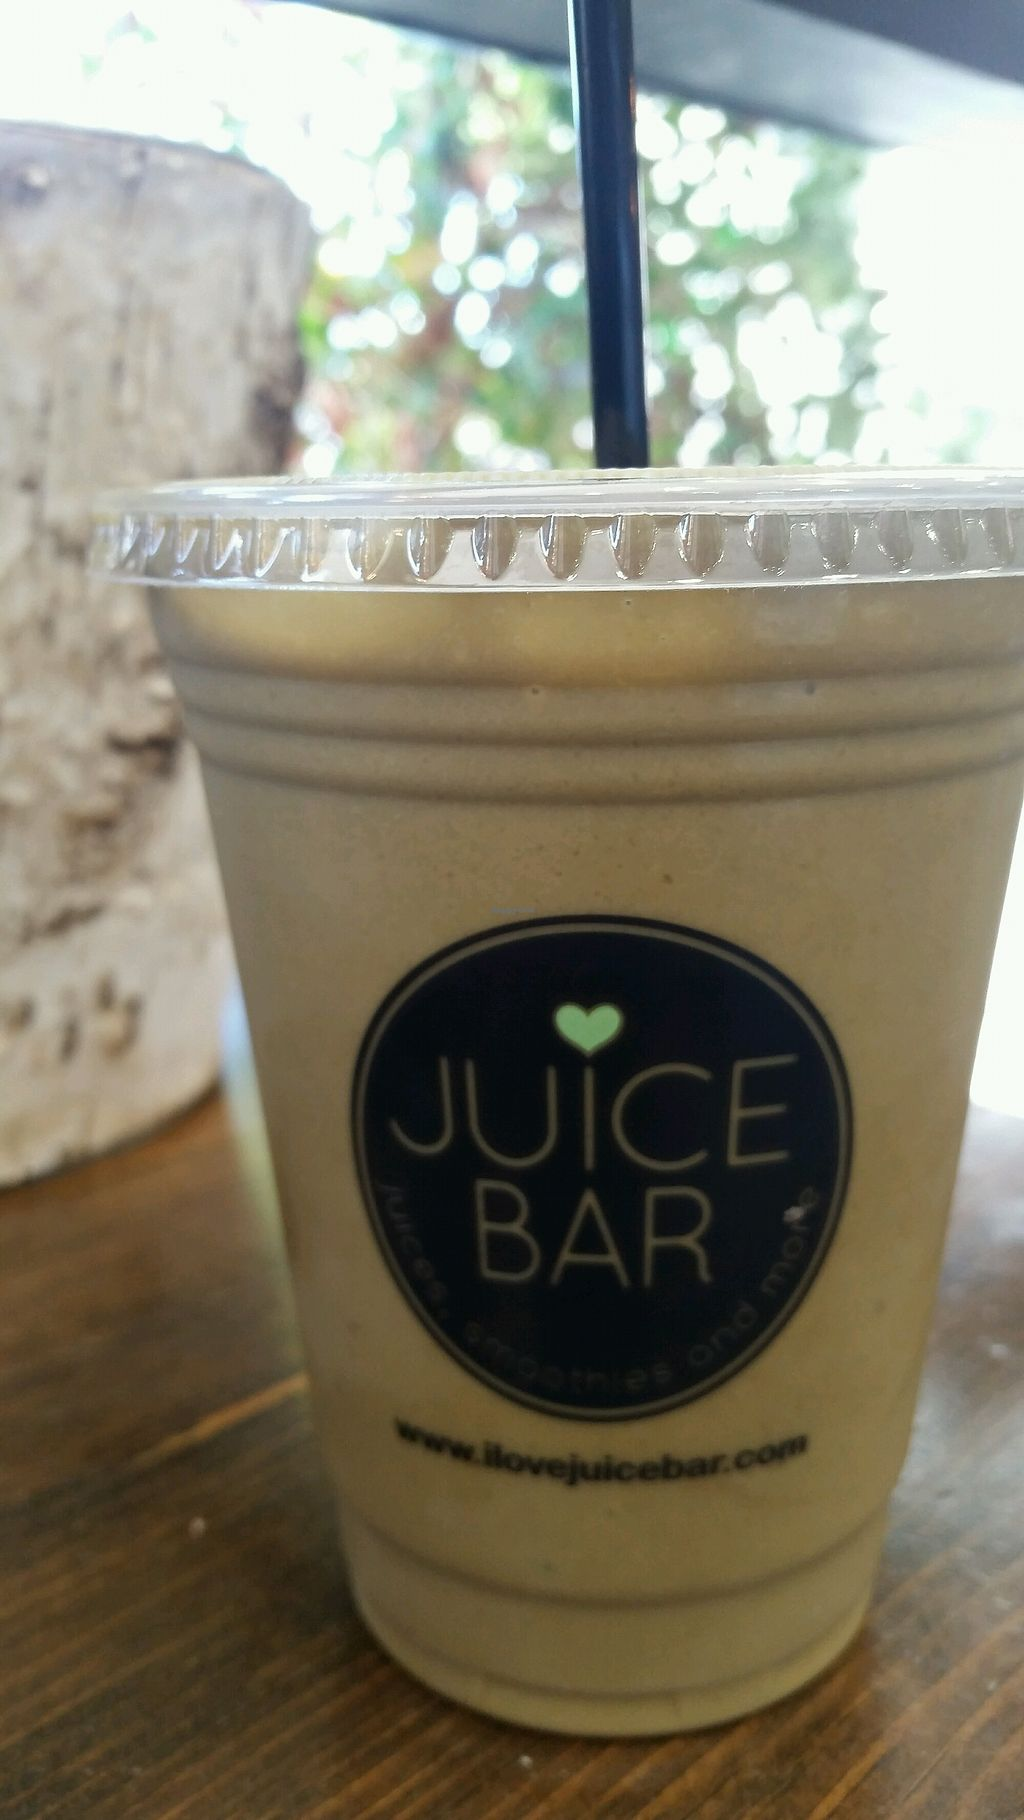 "Photo of I Love Juice Bar  by <a href=""/members/profile/True%20North"">True North</a> <br/>cocoa banana <br/> March 27, 2018  - <a href='/contact/abuse/image/80794/376889'>Report</a>"